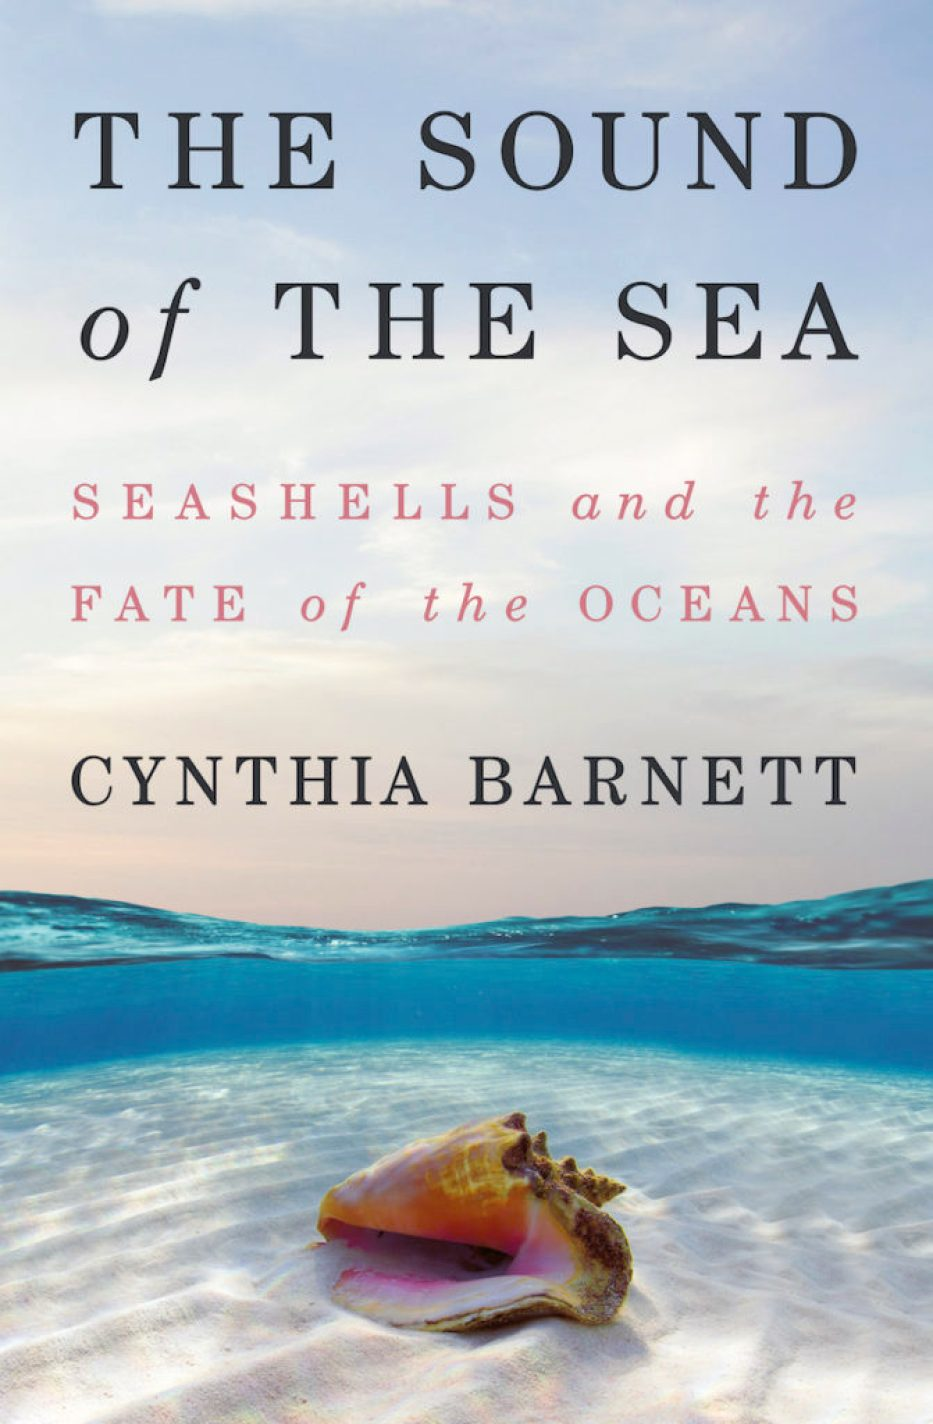 """A photo of a book cover with a blue sky dipping under the water with sand and a pink conch shell at the bottom that reads """"The Sound of the Sea: Seashells and the Fate of the Oceans; Cynthia Barnett"""""""